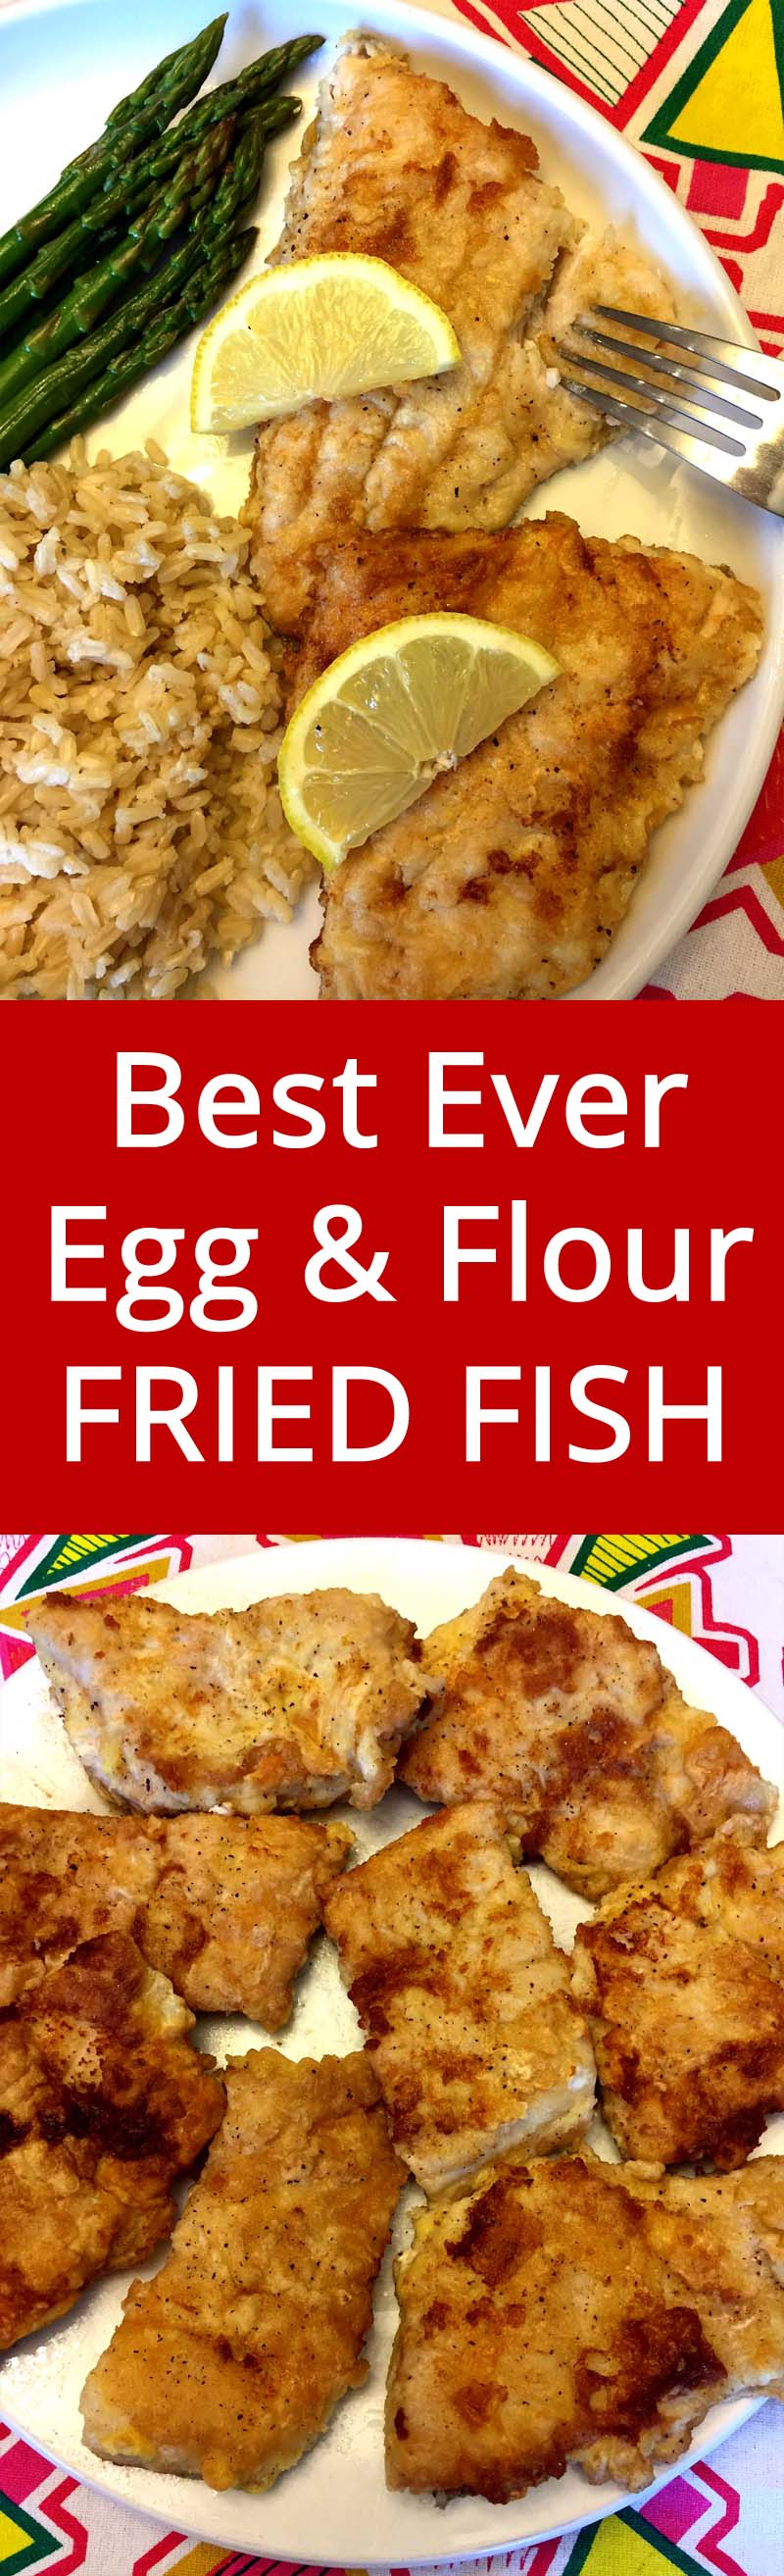 Pan Fried Fish Coated In Egg And Flour Recipe Melanie Cooks